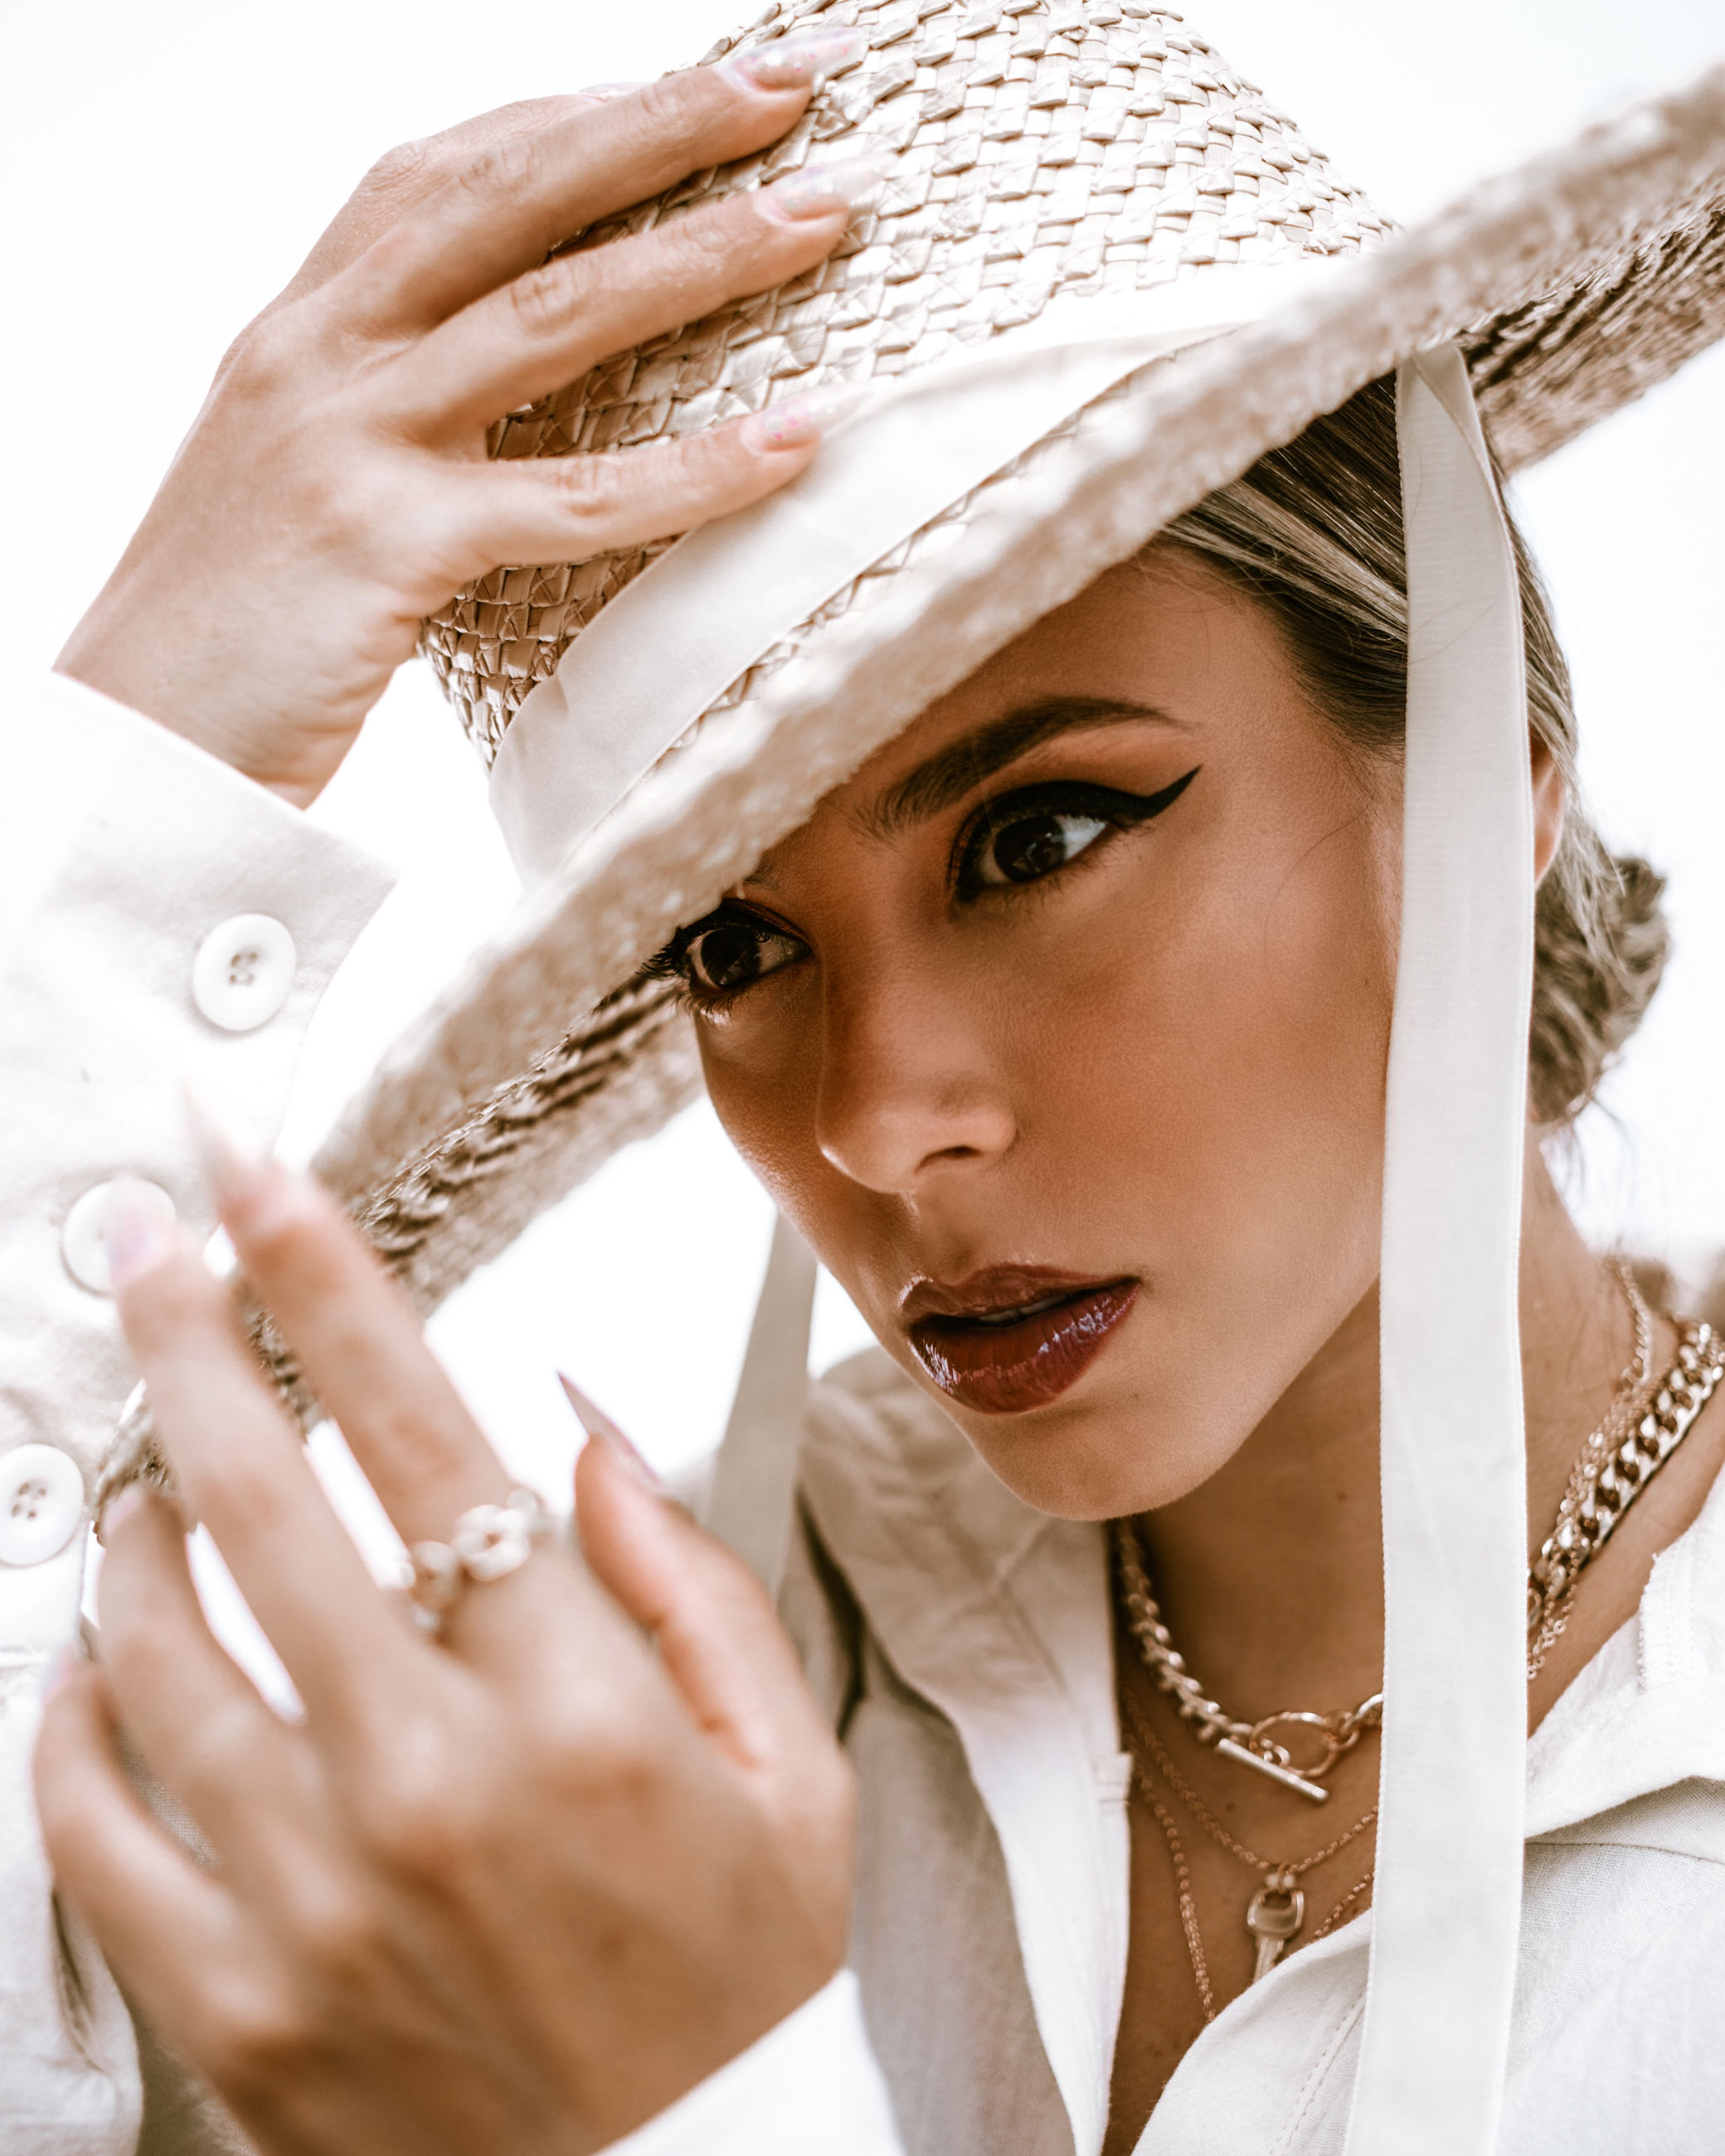 adult, portrait, one person, women, clothing, hat, young adult, headshot, fashion accessory, jewelry, female, fashion, sun hat, studio shot, person, human face, looking, traditional clothing, headgear, hand, looking at camera, white, elegance, holding, bride, veil, close-up, emotion, indoors